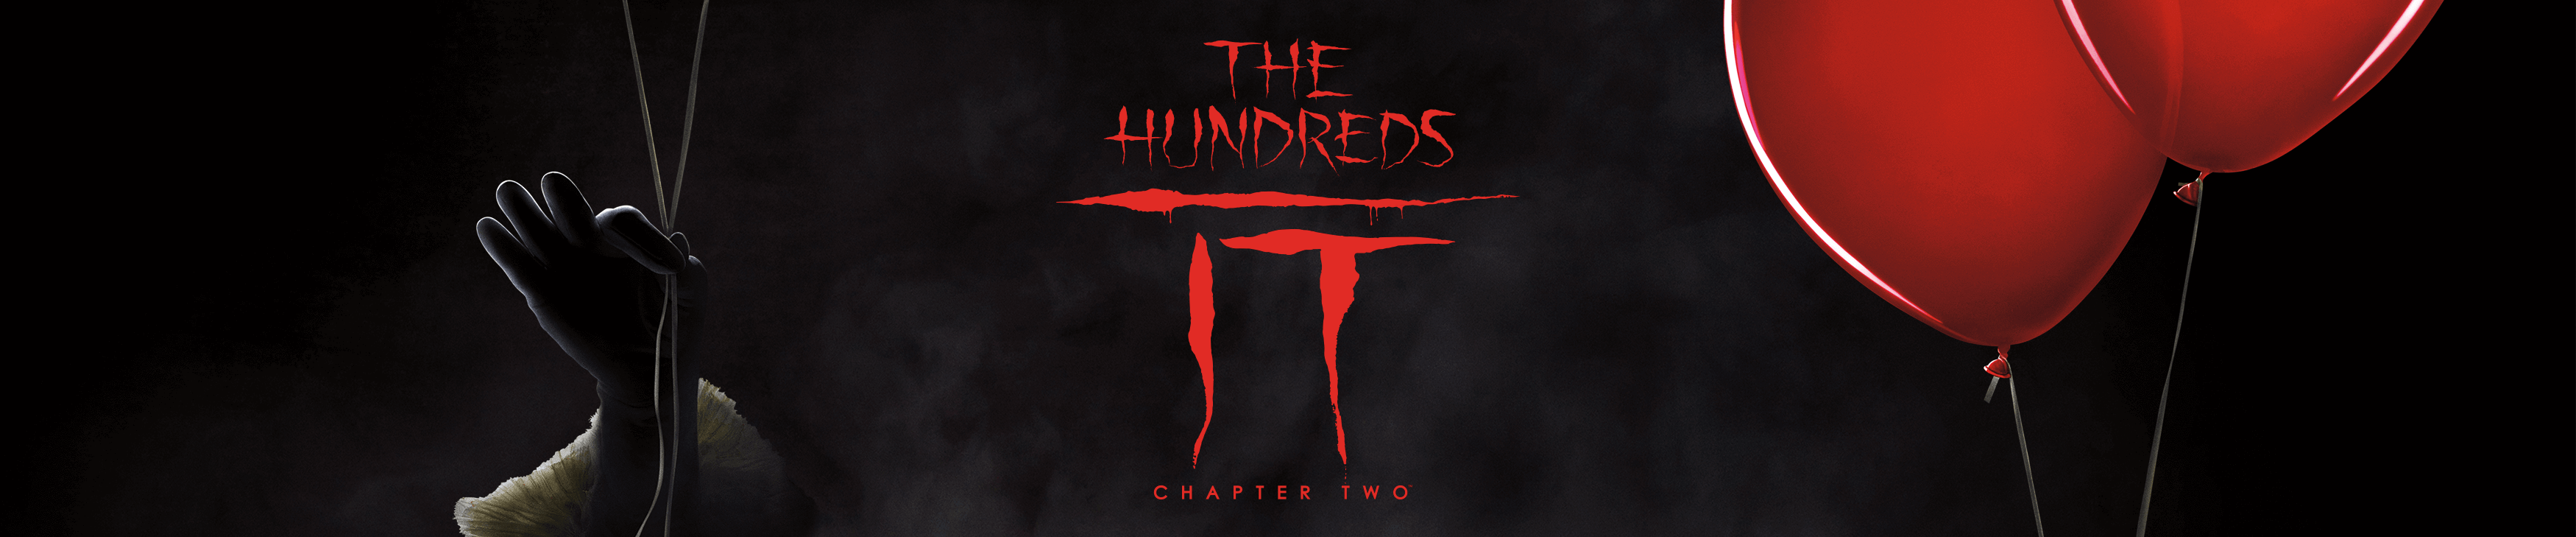 The Hundreds x IT Chapter 2